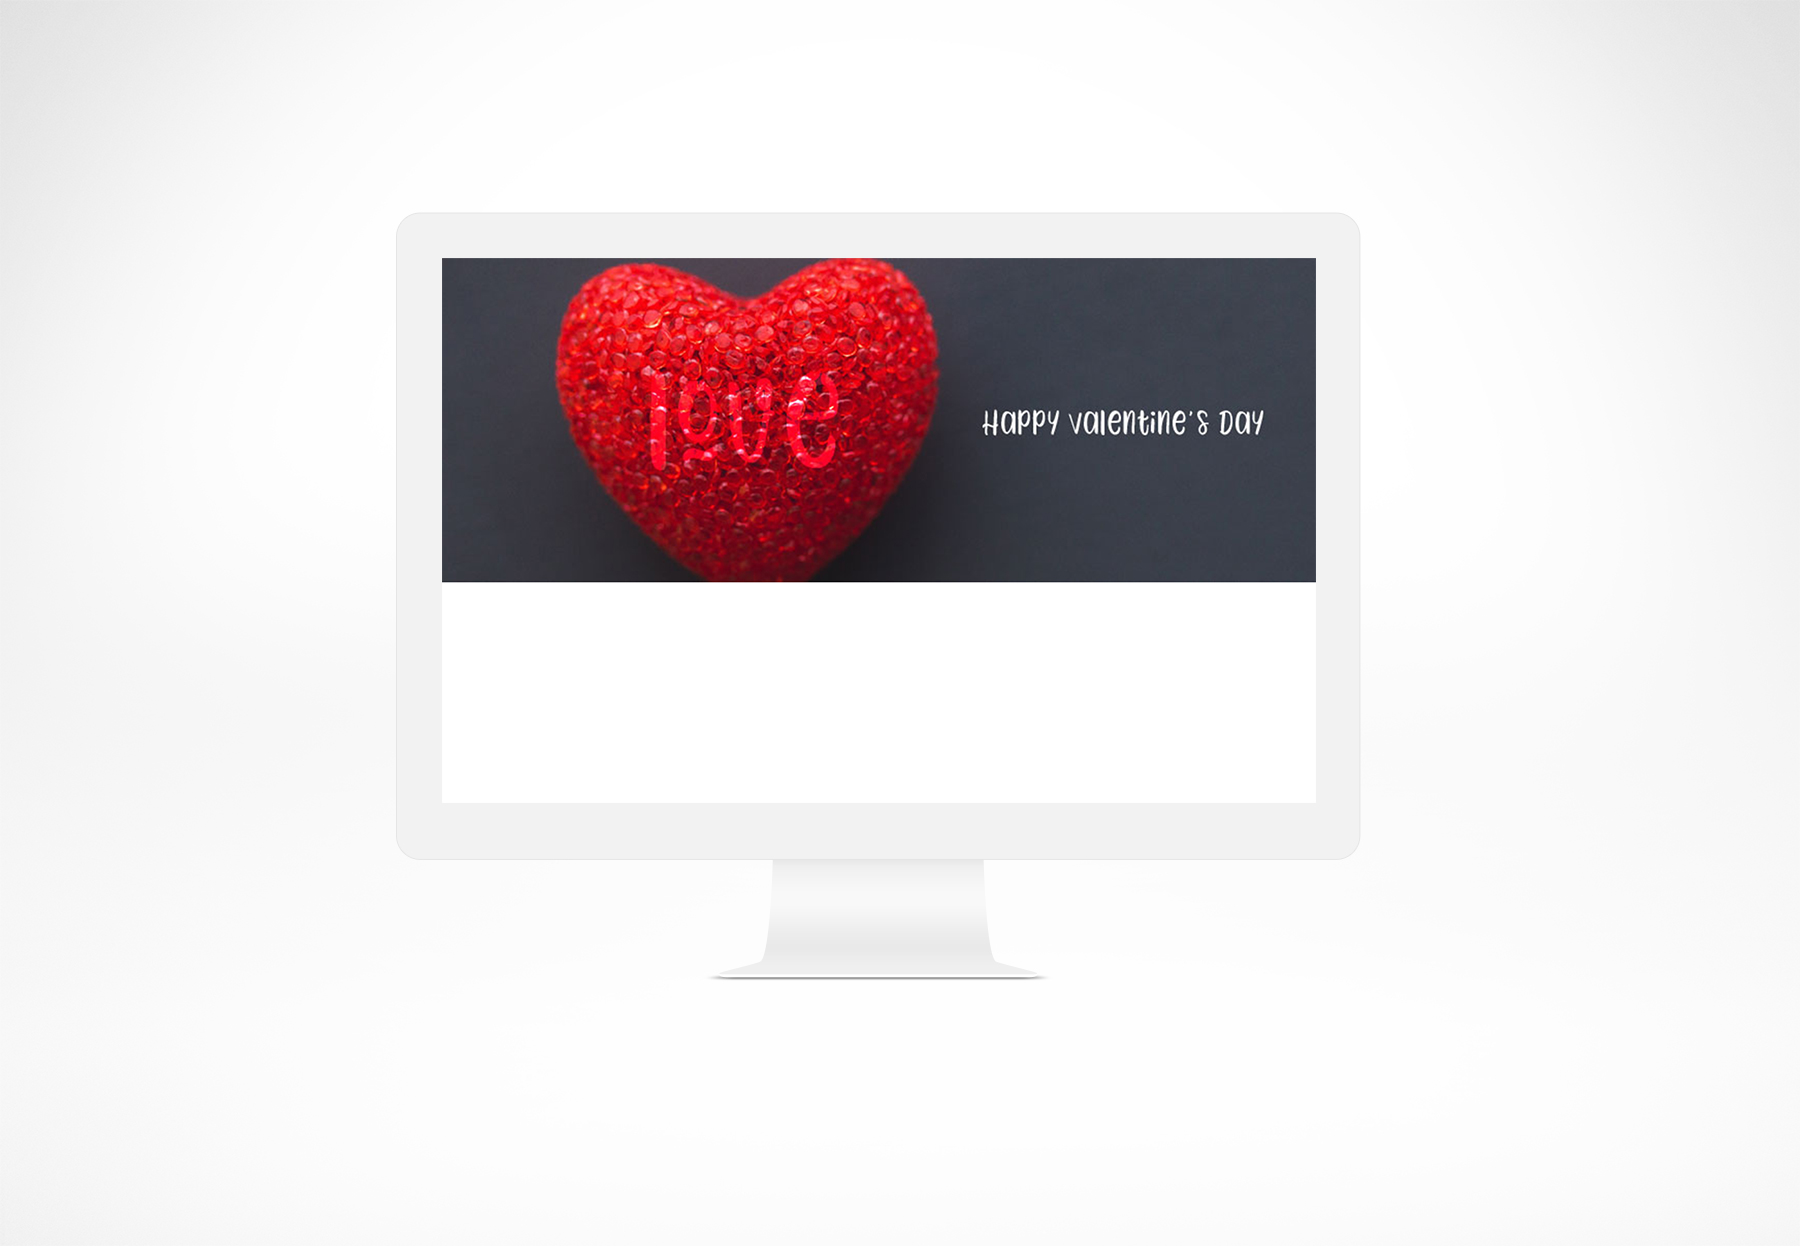 Valentine's Day Facebook Banner example image 3